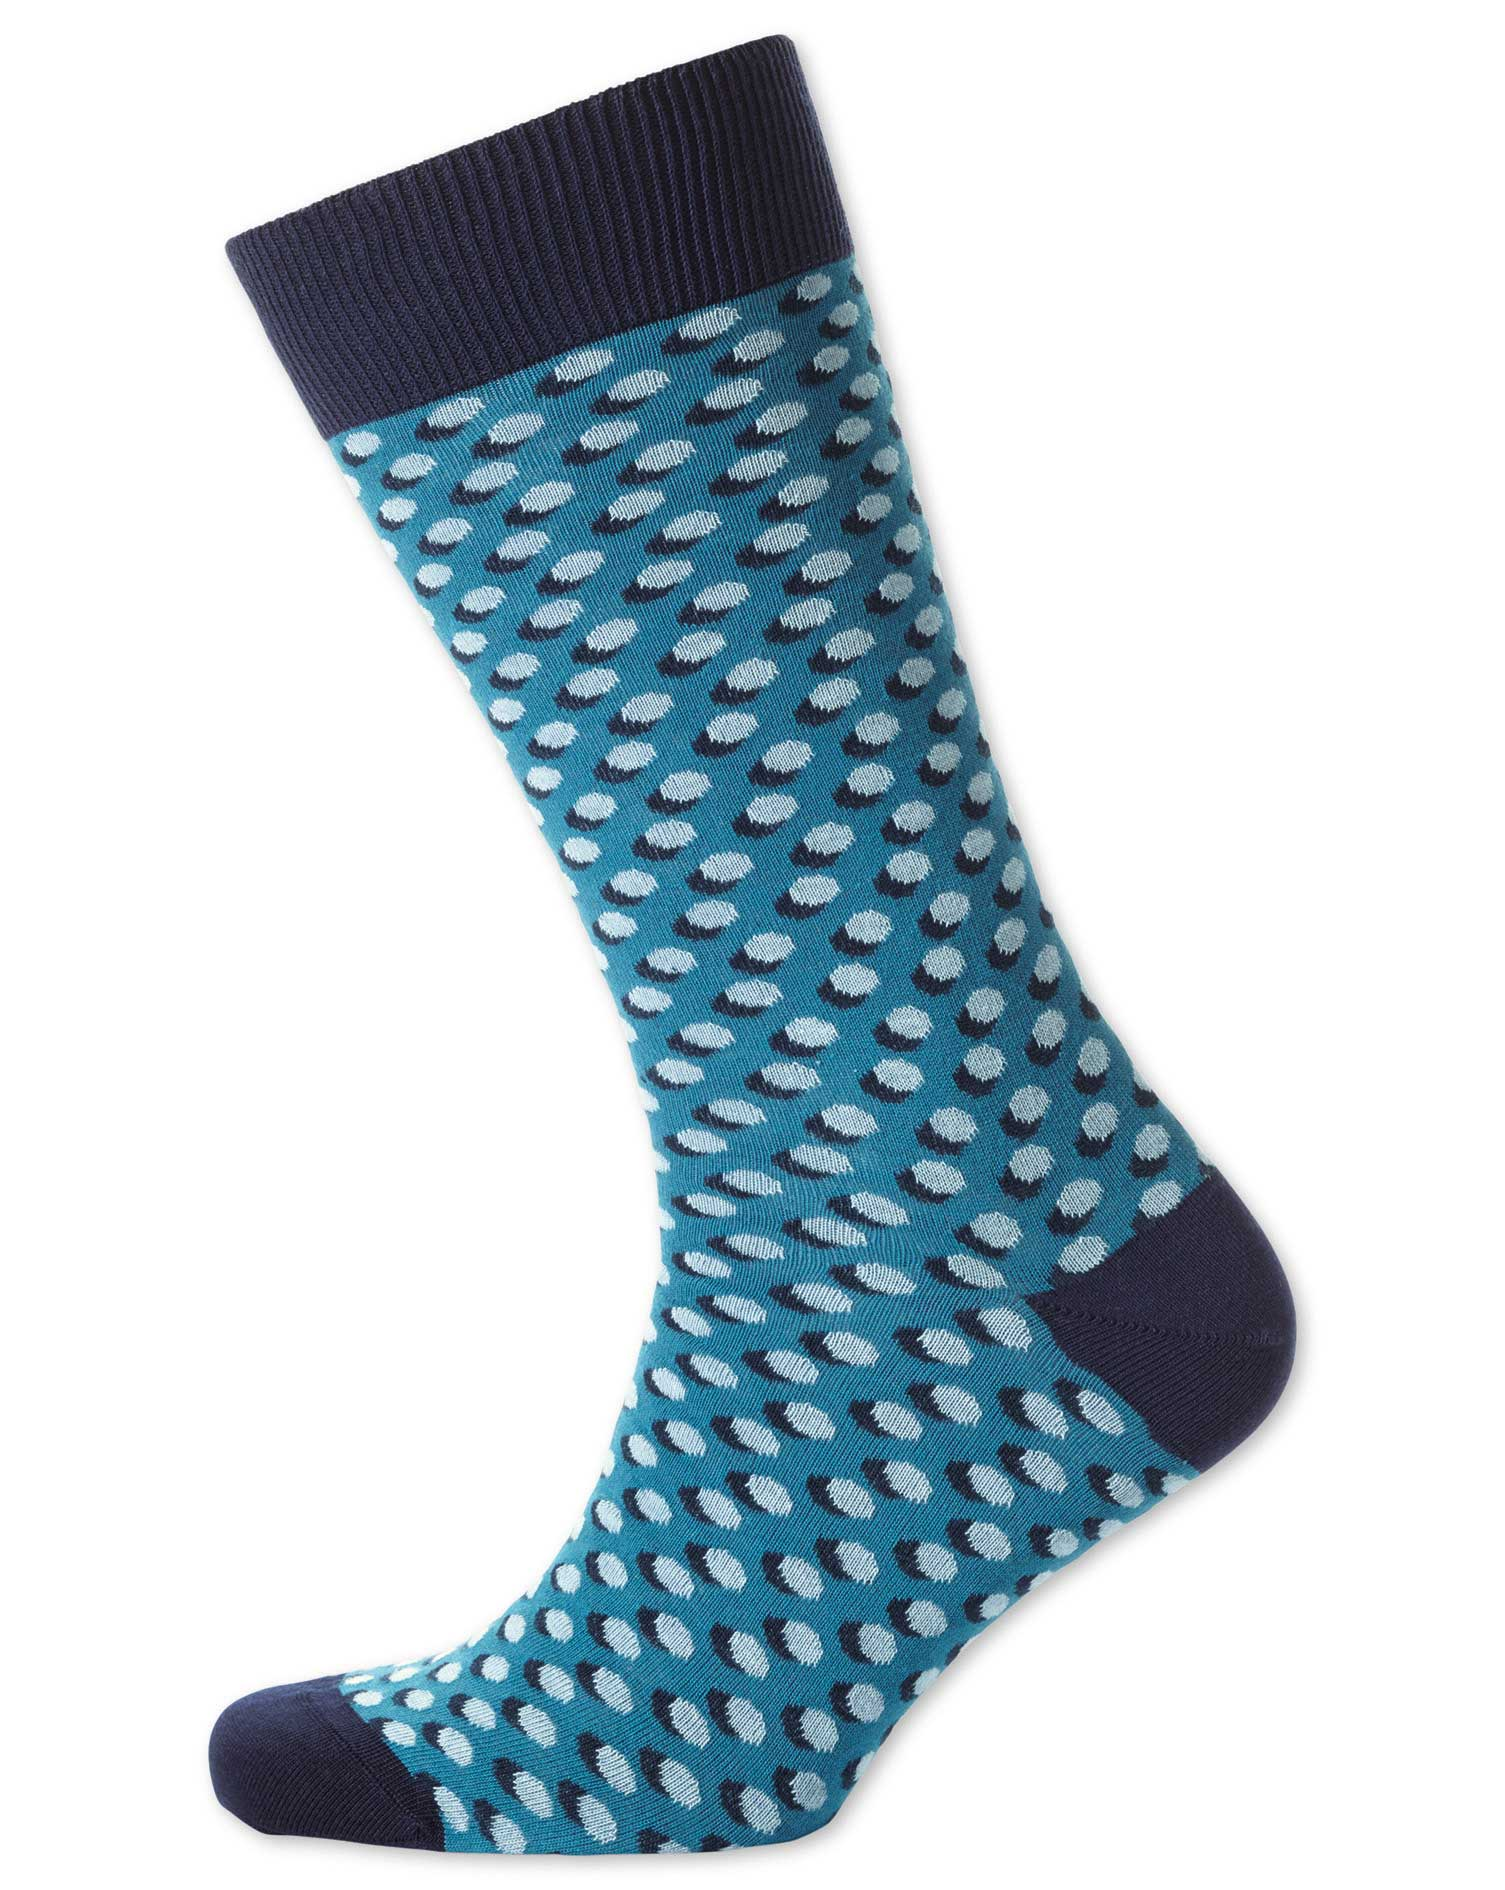 blue shadow spot socks size medium by charles tyrwhitt